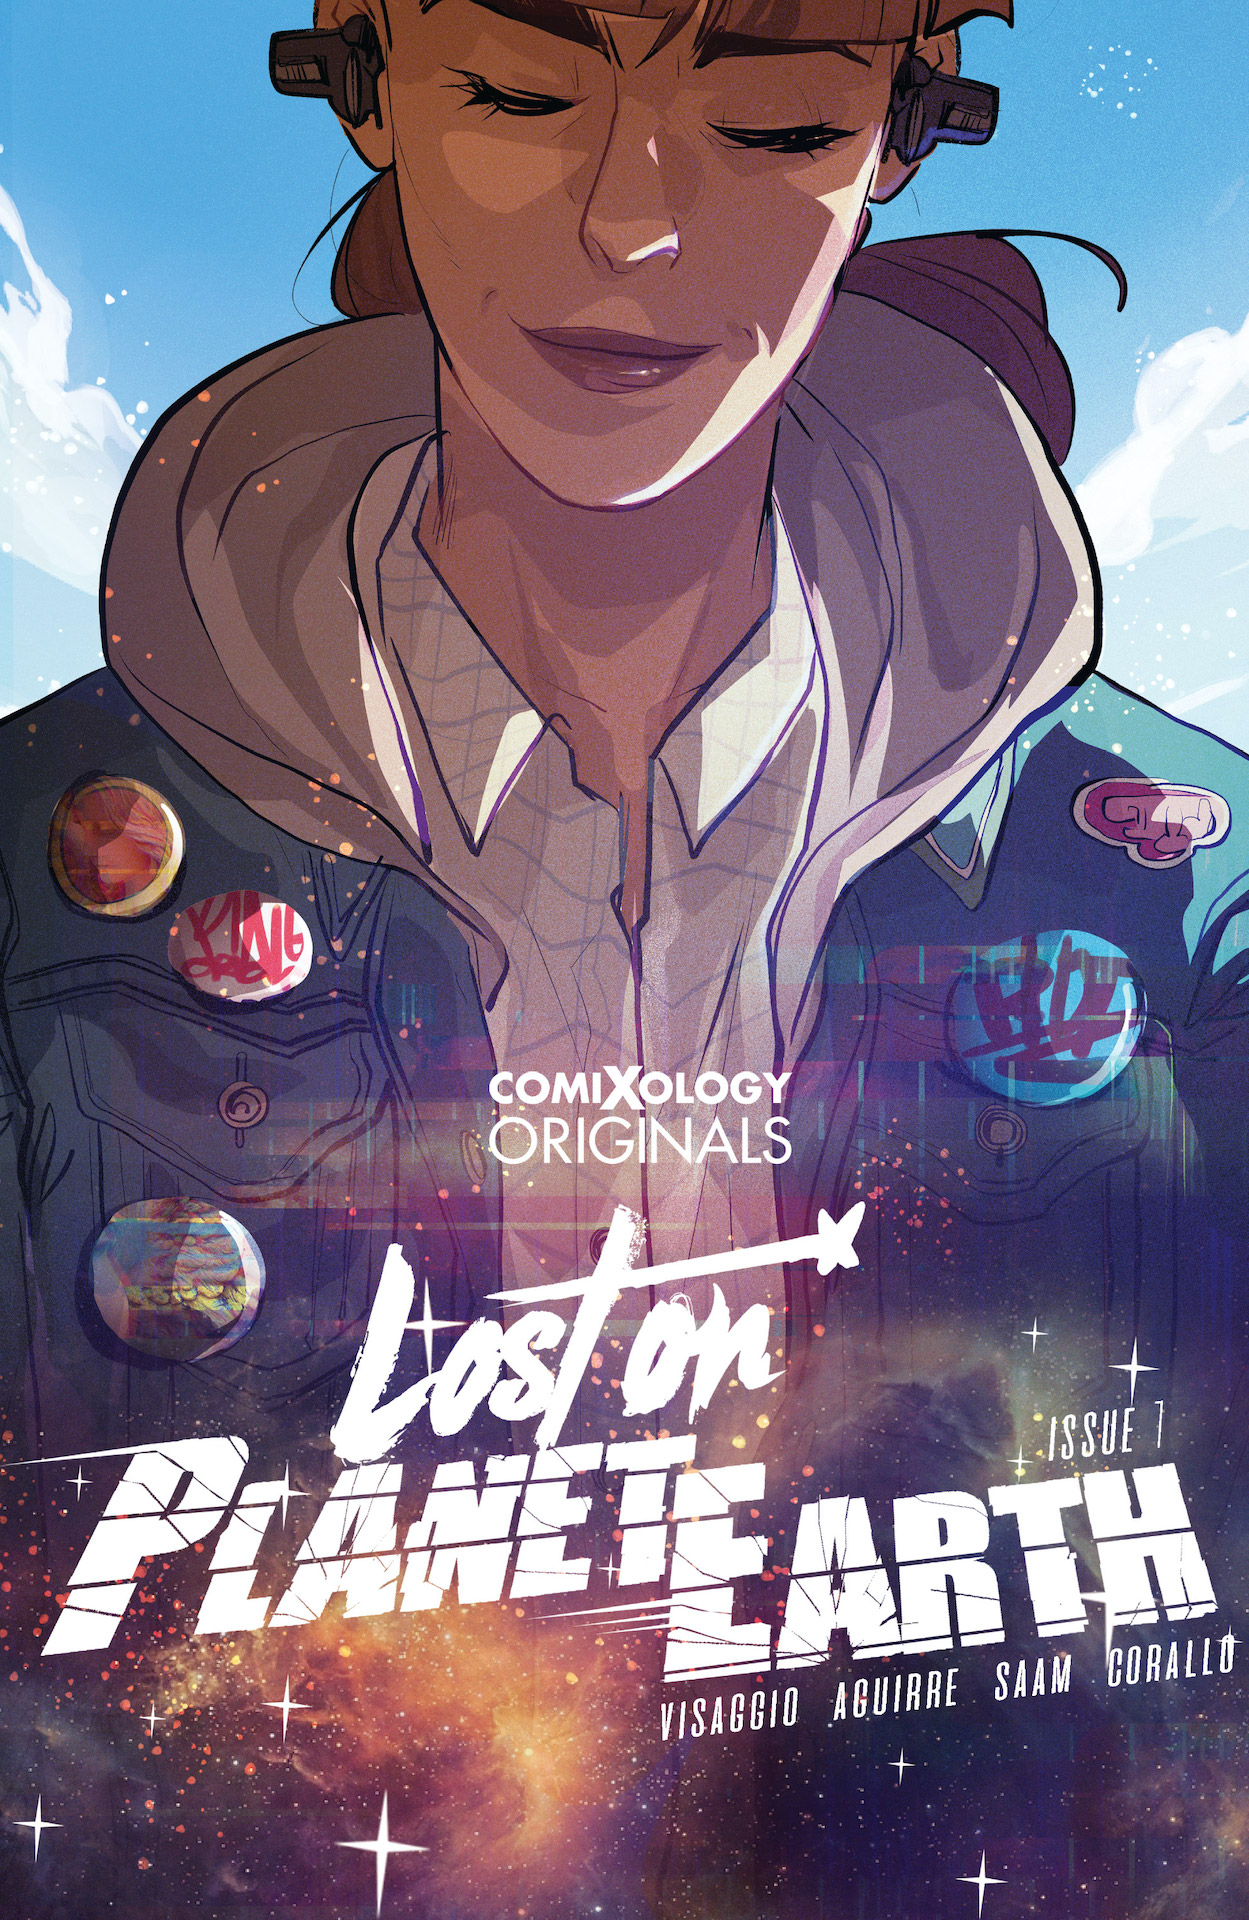 The new comic will be available April 15, 2020 on comiXology.